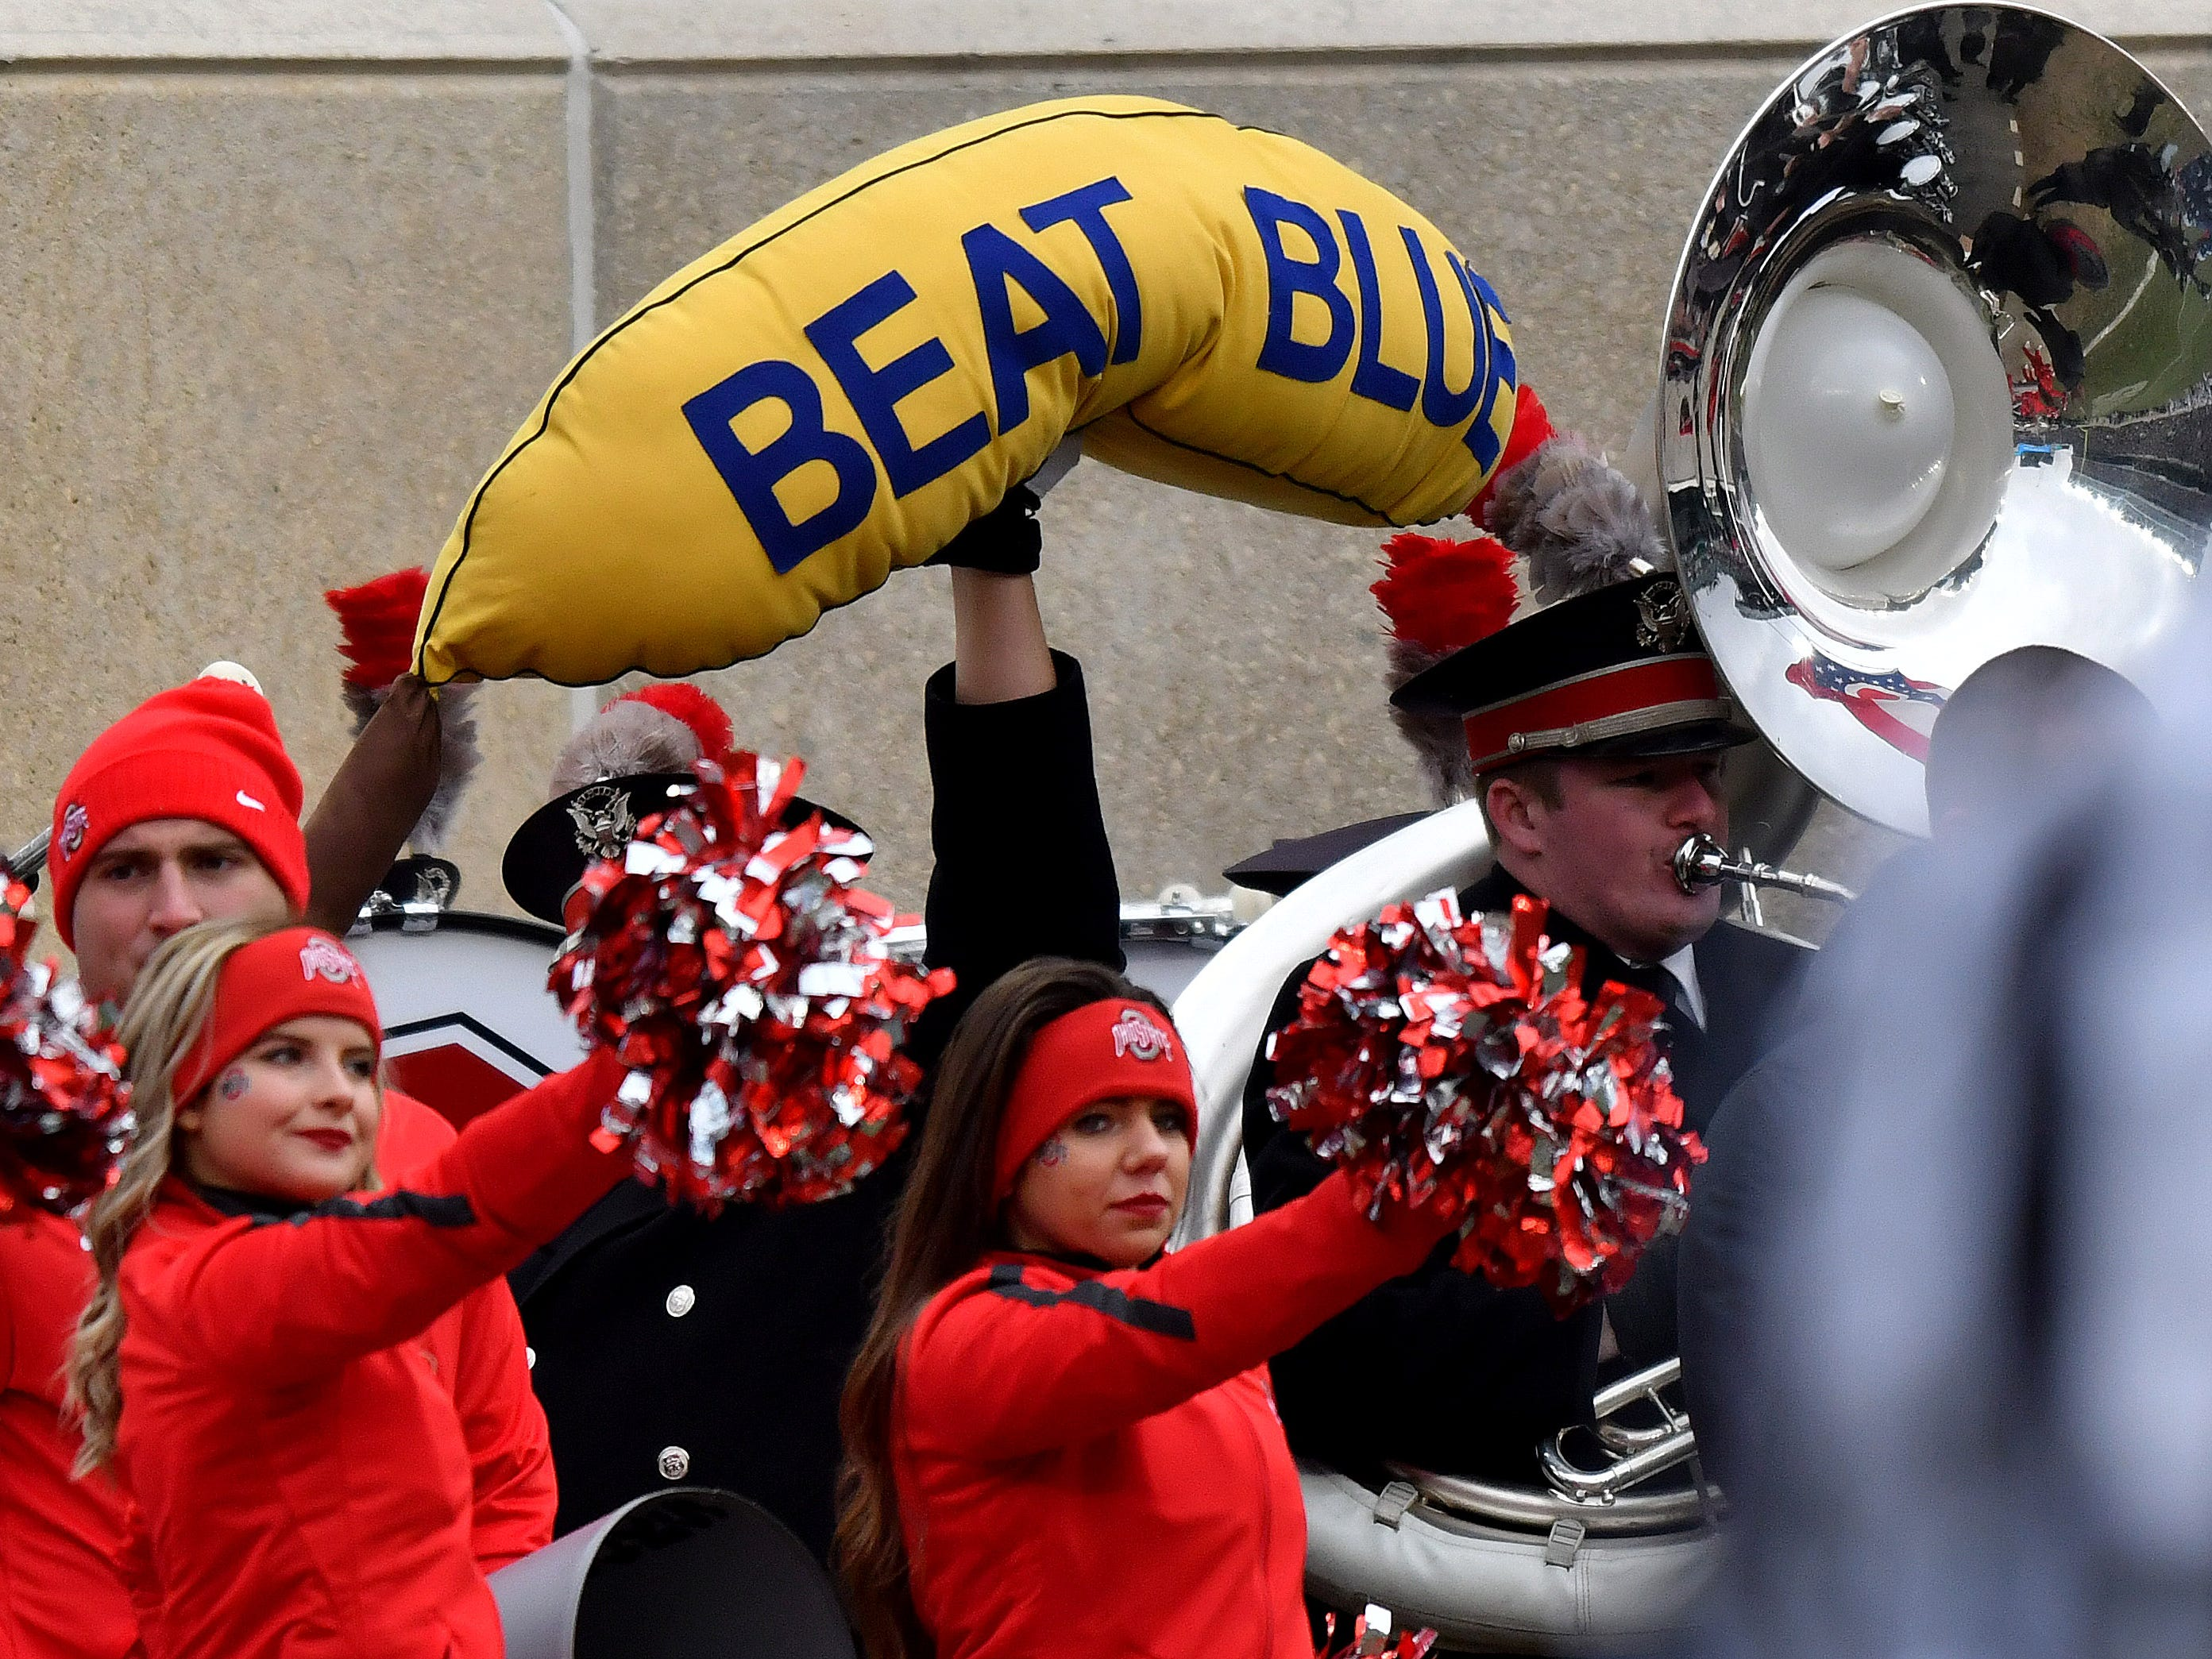 The Ohio State Band holds aloft a message for the Michigan Wolverines.